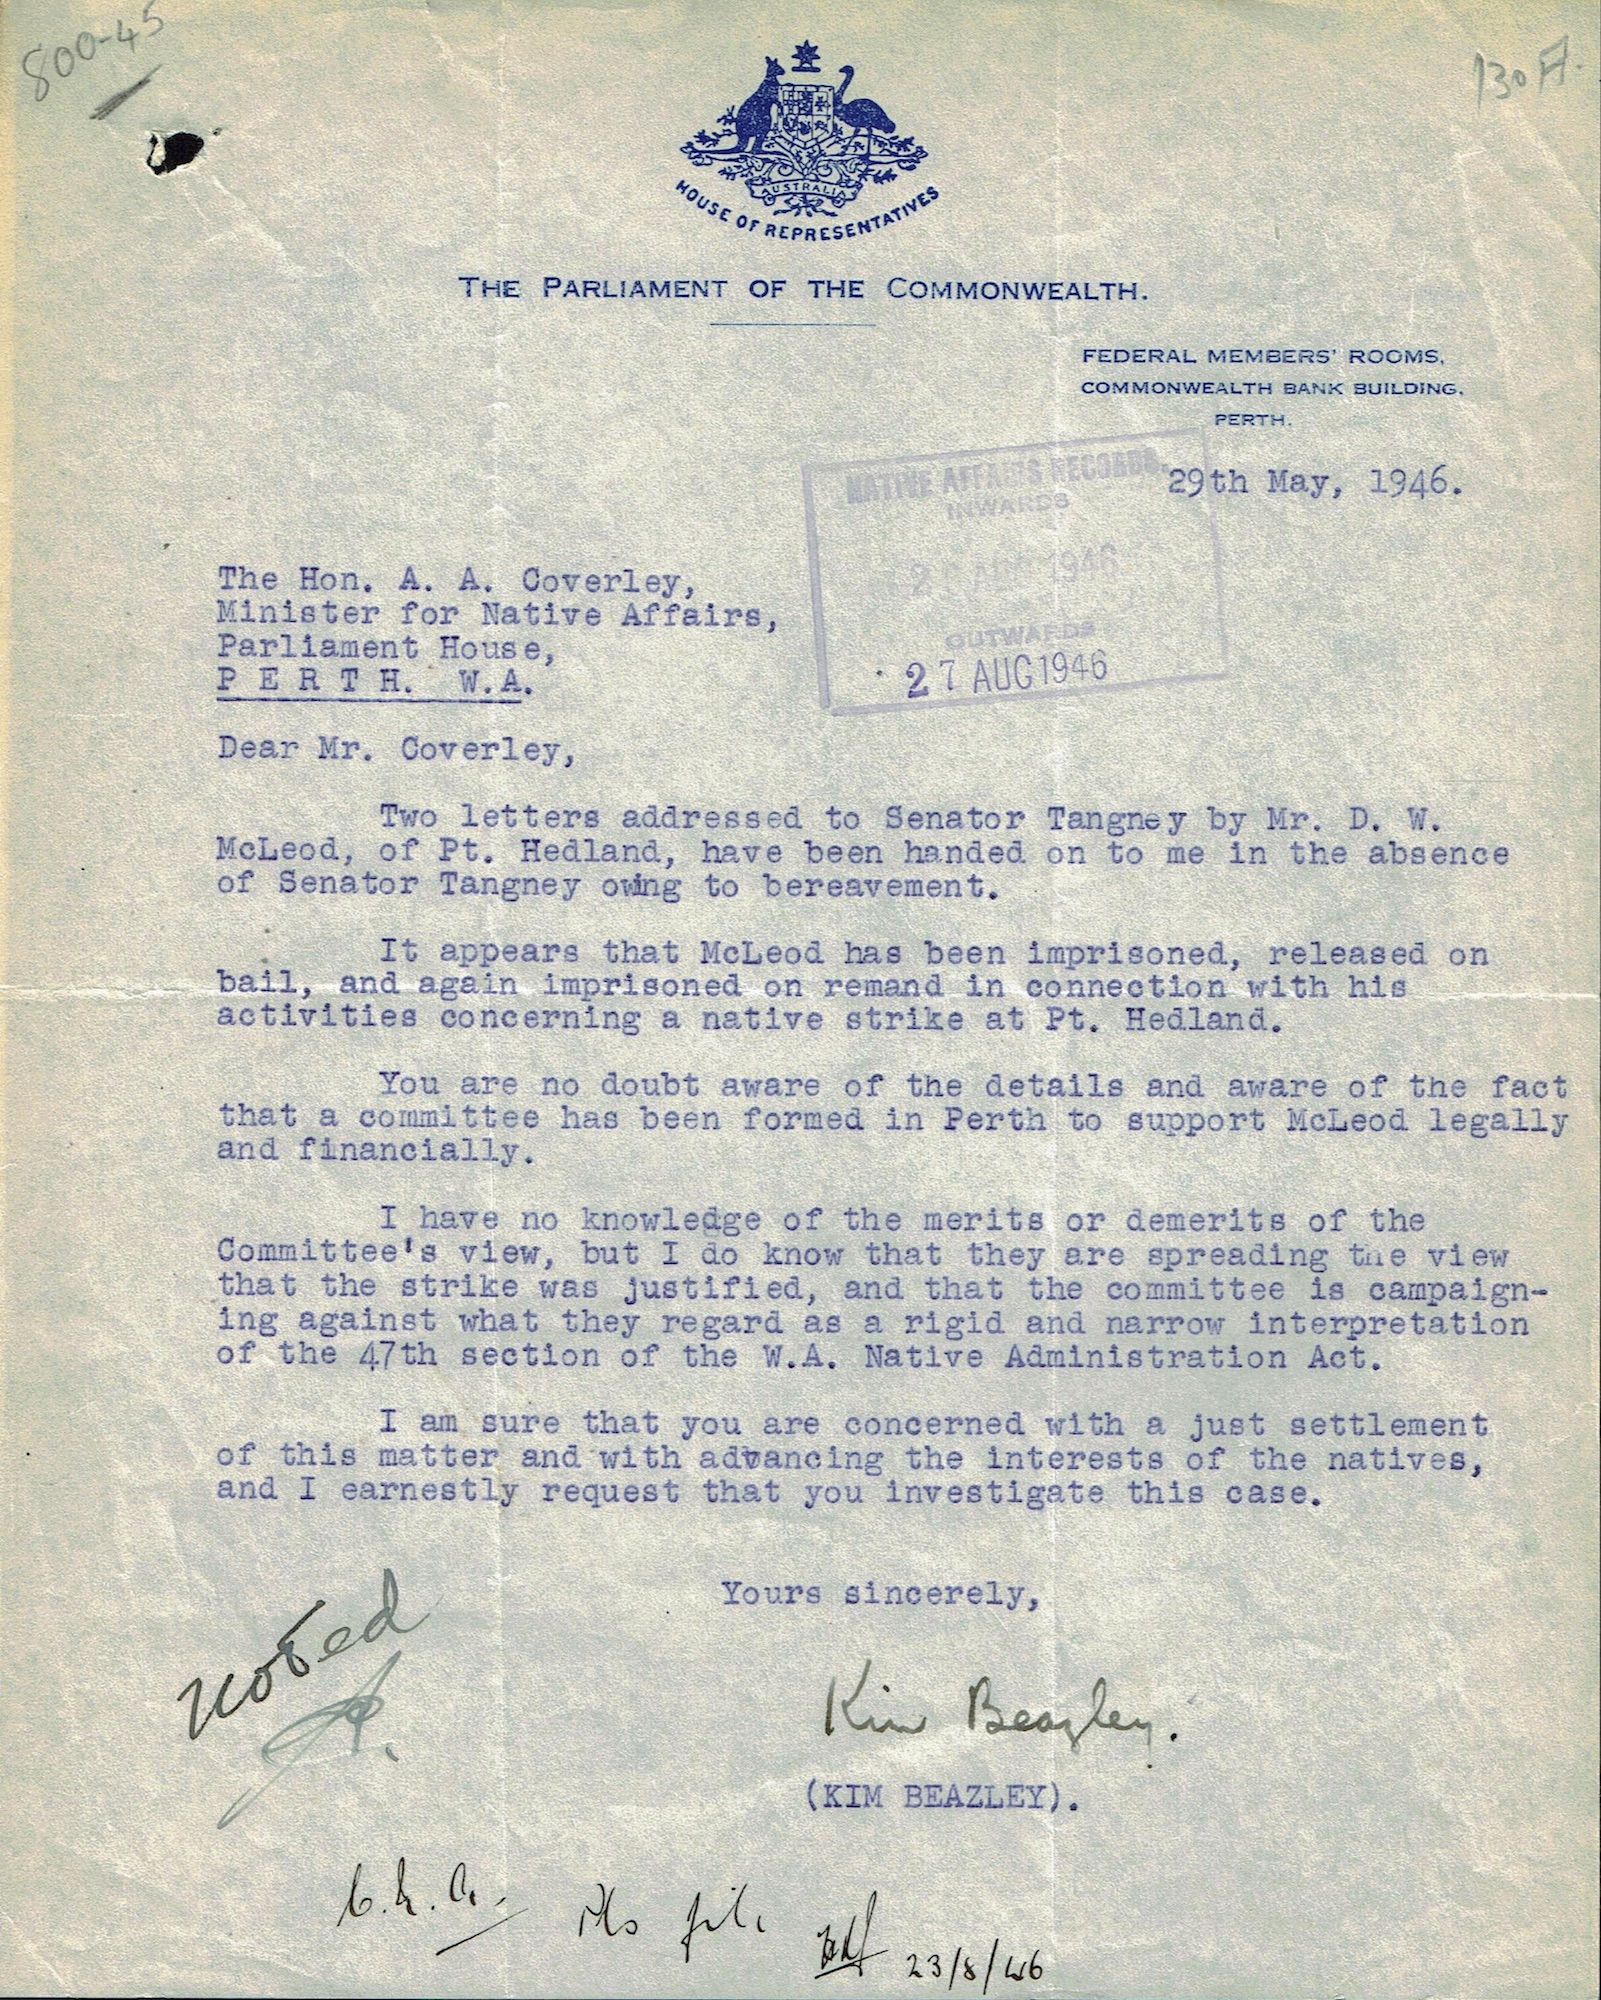 Federal Labor MP Beazley to Bob Coverley, 29 May 1946